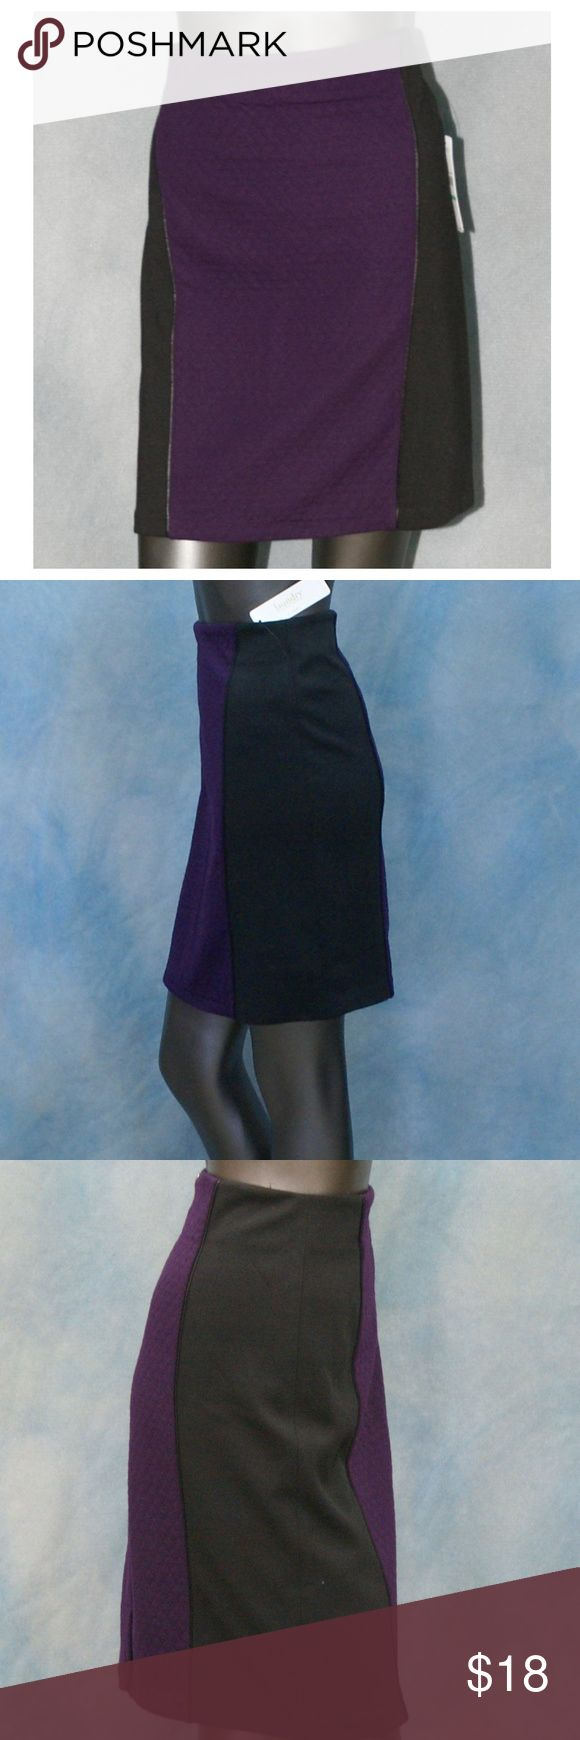 NEW Laundry Blackberry 2 Tone Quilted Pencil Skirt NEW WITH TAGS  Laundry BY Shelli Segal Blackberry Two Tone Quilt Stitch Pattern Skirt NWT   Size 2  Purple and Black  Style number: N5F23S29 TJ 551  So soft. Hits right at the knee. Great for work or to dress up. Color blocking gives a slenderizing look. Adorable quilted center panels add interesting texture. Exposed zipper closure, leatherette piping. 14 inches across at waist and 20 inches in length. All measurements taken while laying…